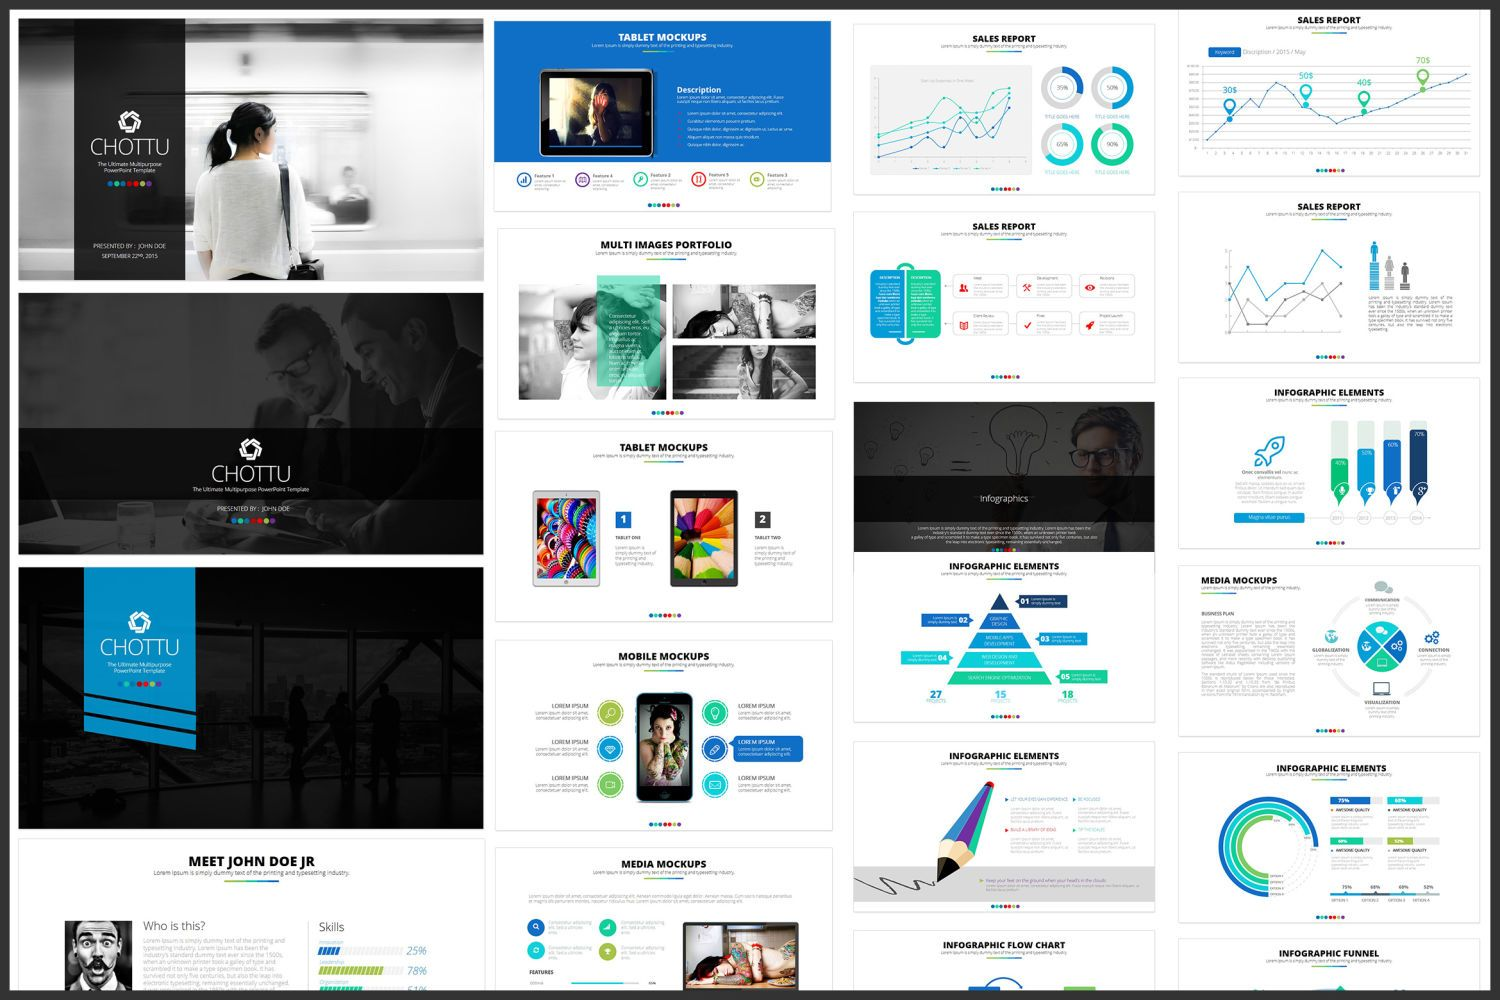 Chotts powerpoint template by graphixshiv on envato elements work chotts powerpoint template by graphixshiv on envato elements toneelgroepblik Choice Image